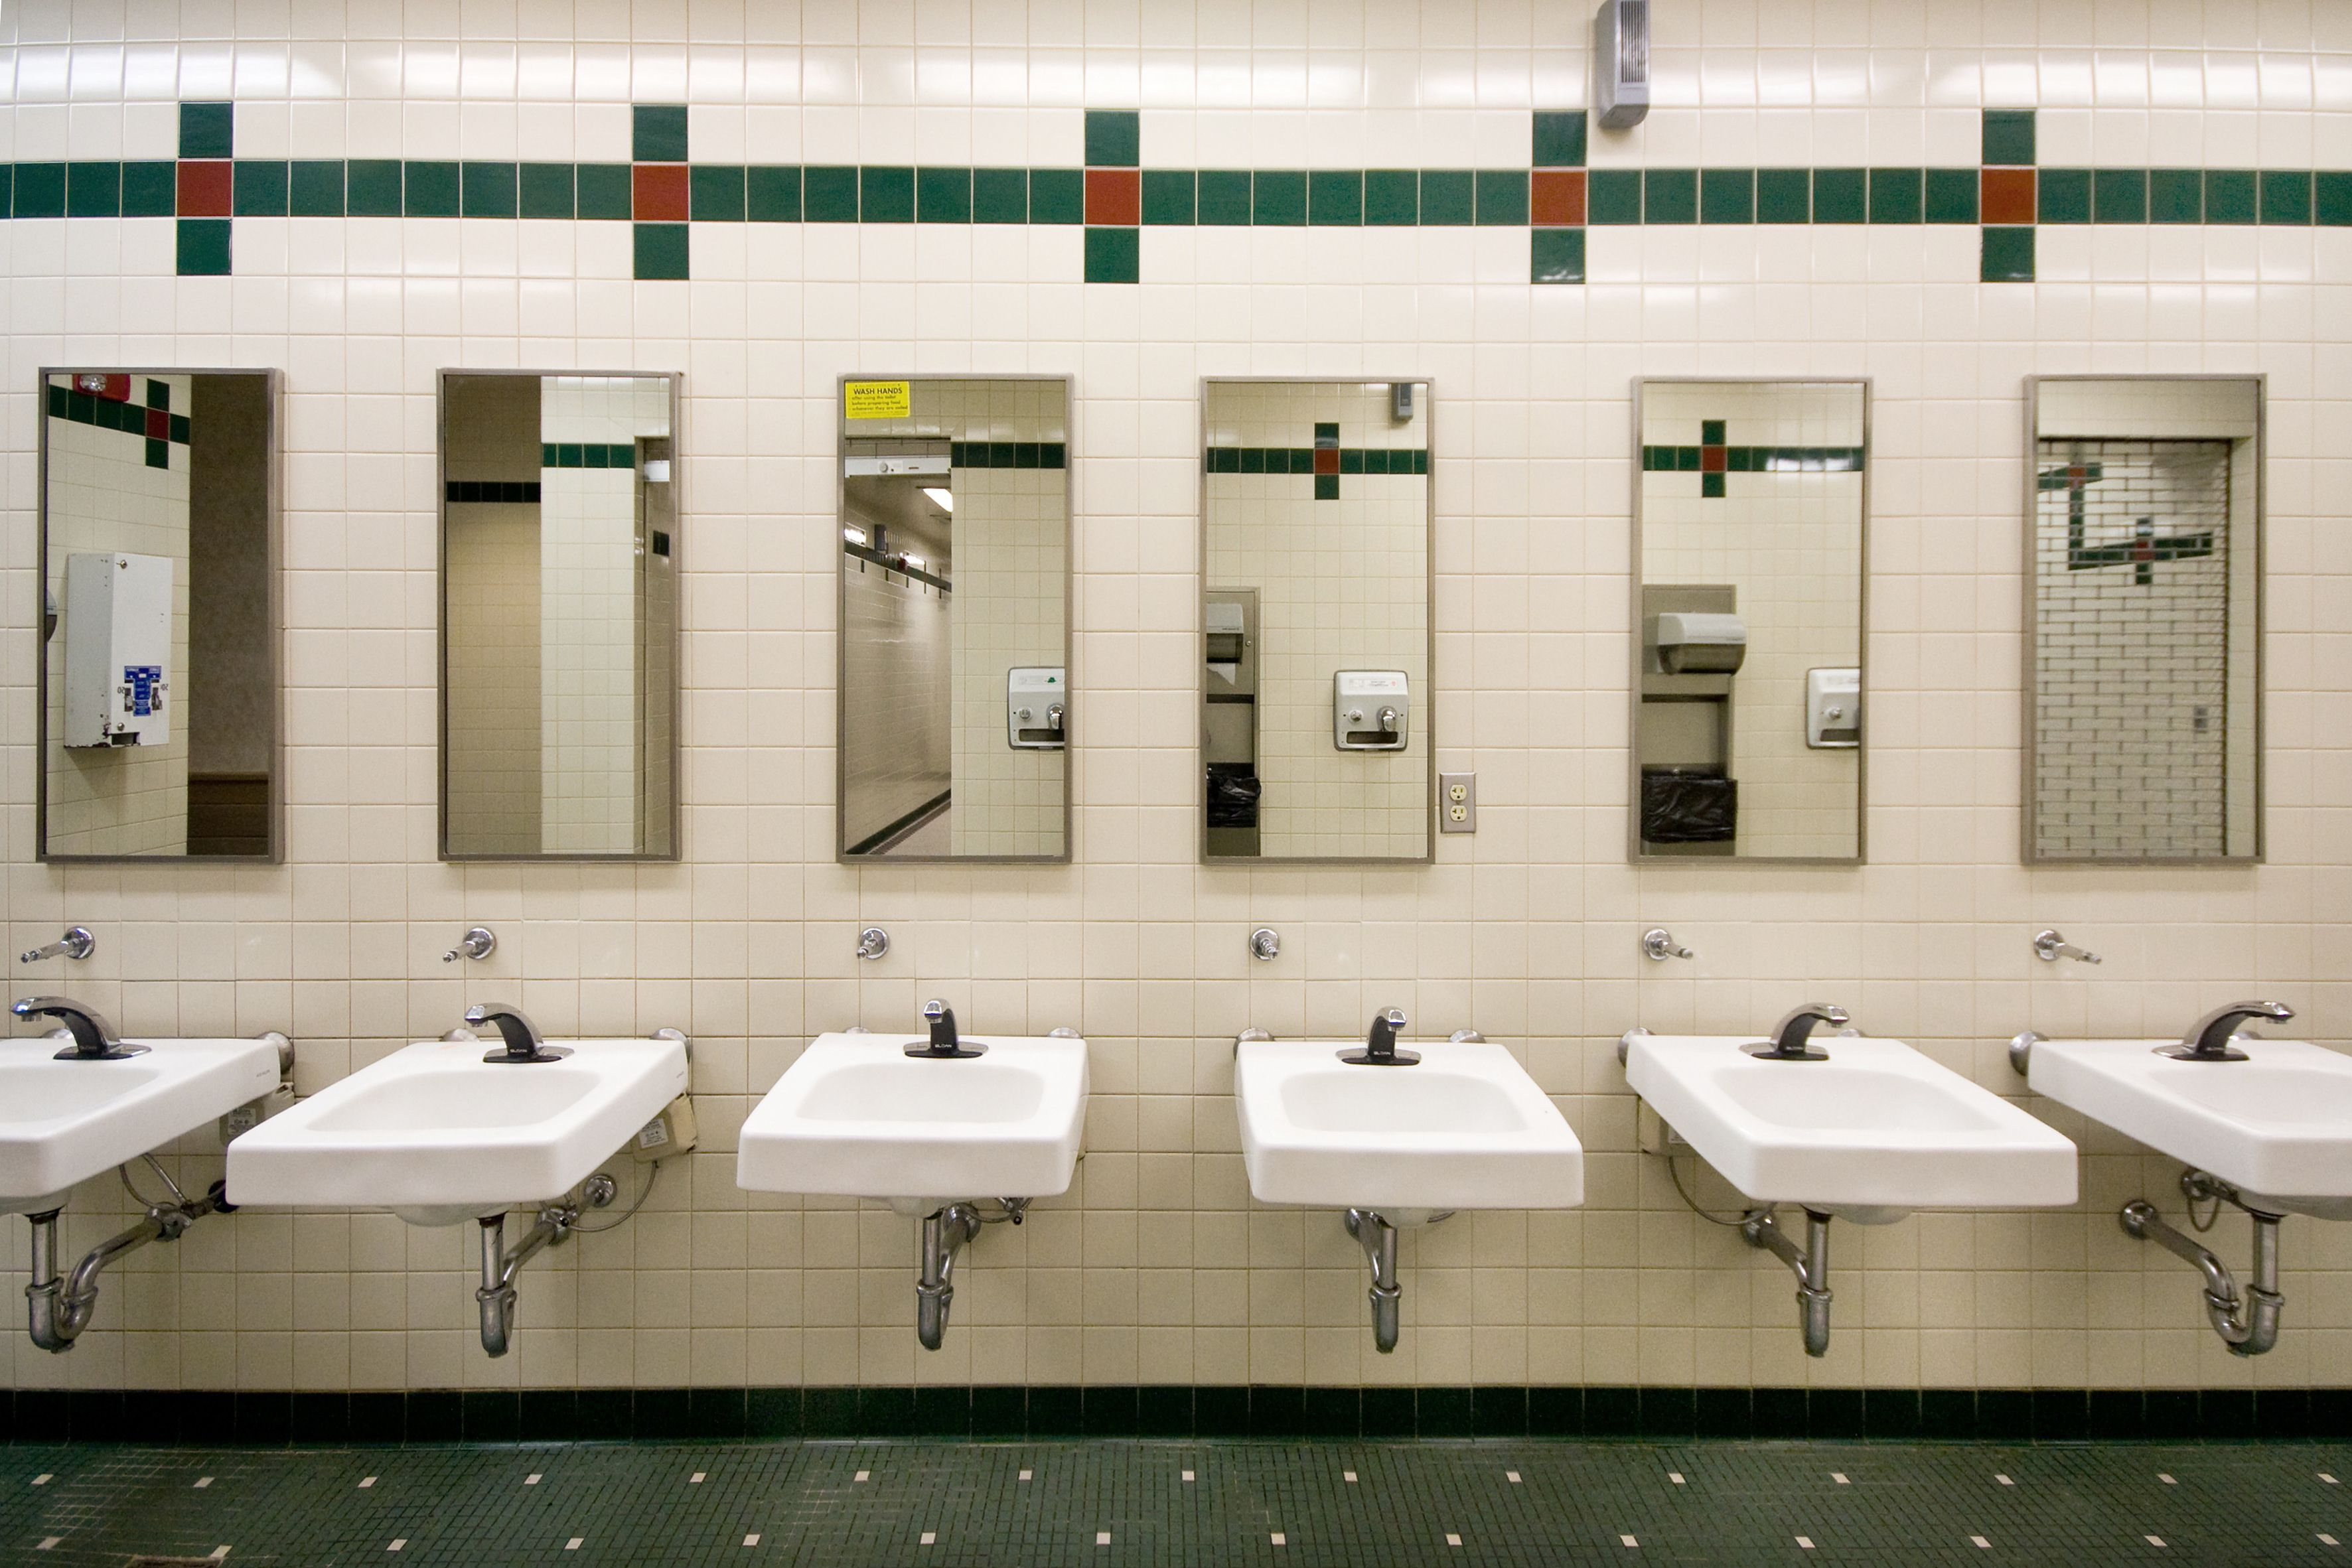 Cleanest Bathroom Stall - Which Bathroom Stall Is the Cleanest